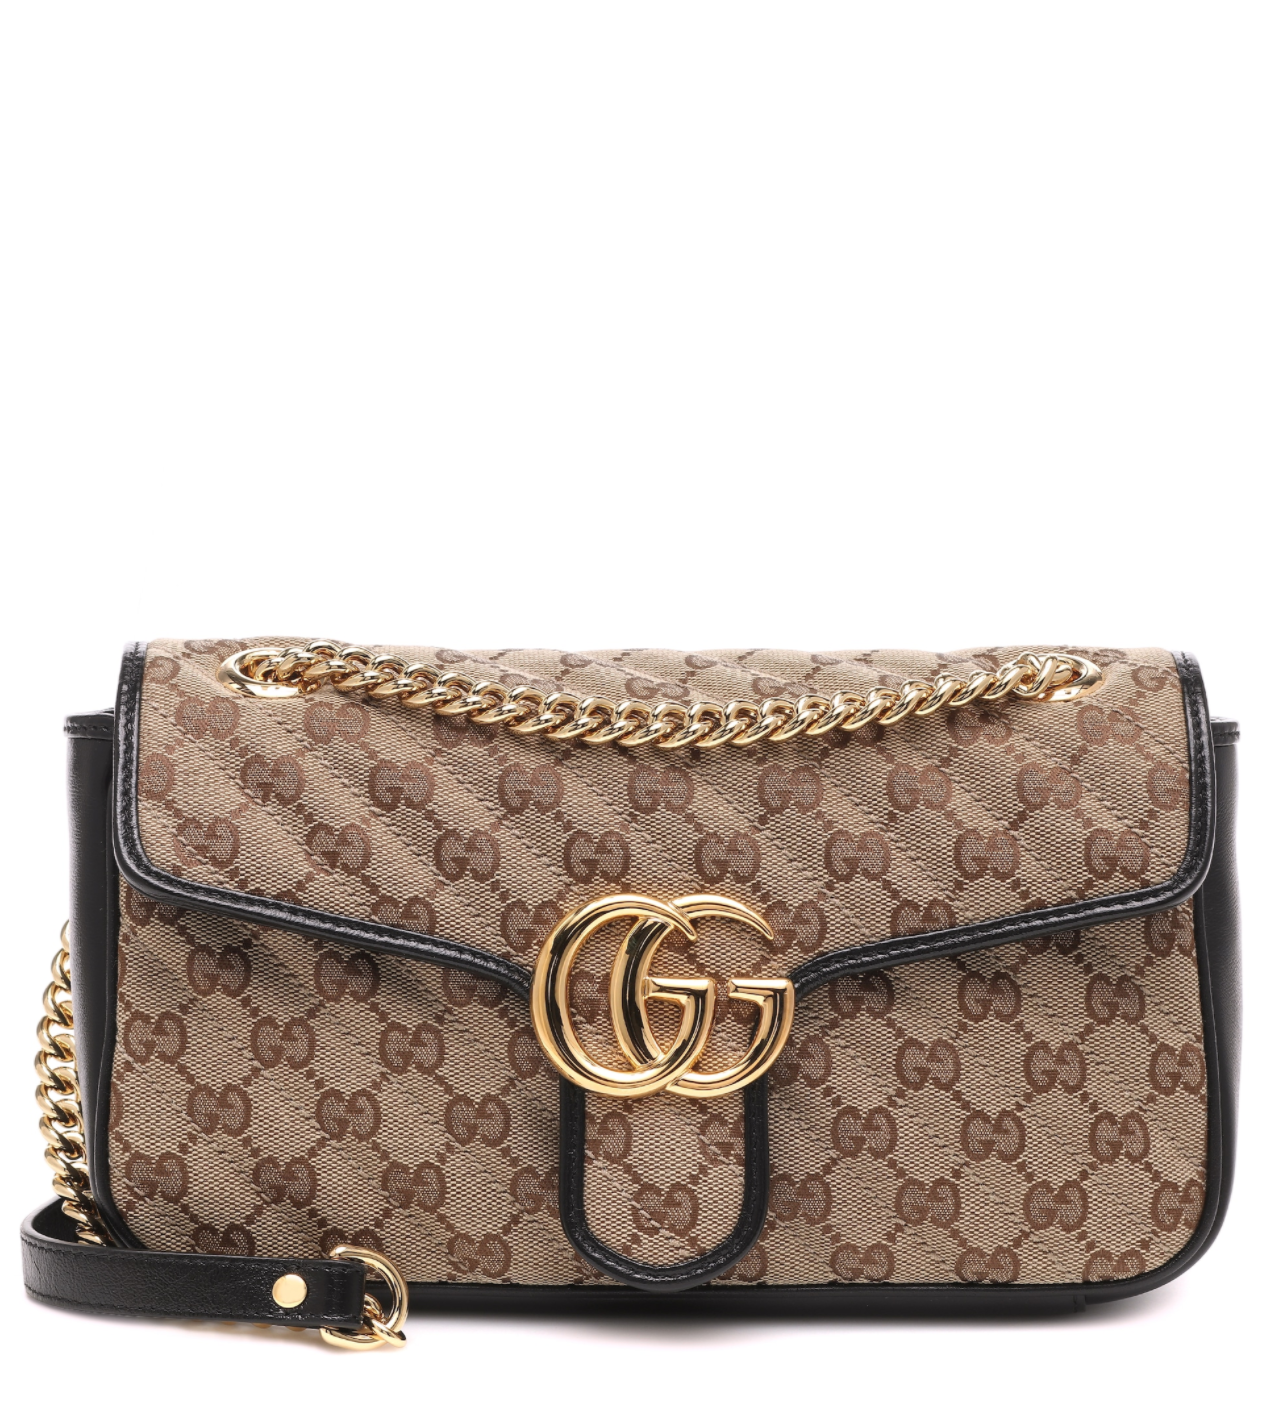 GG Marmont Brown Bag